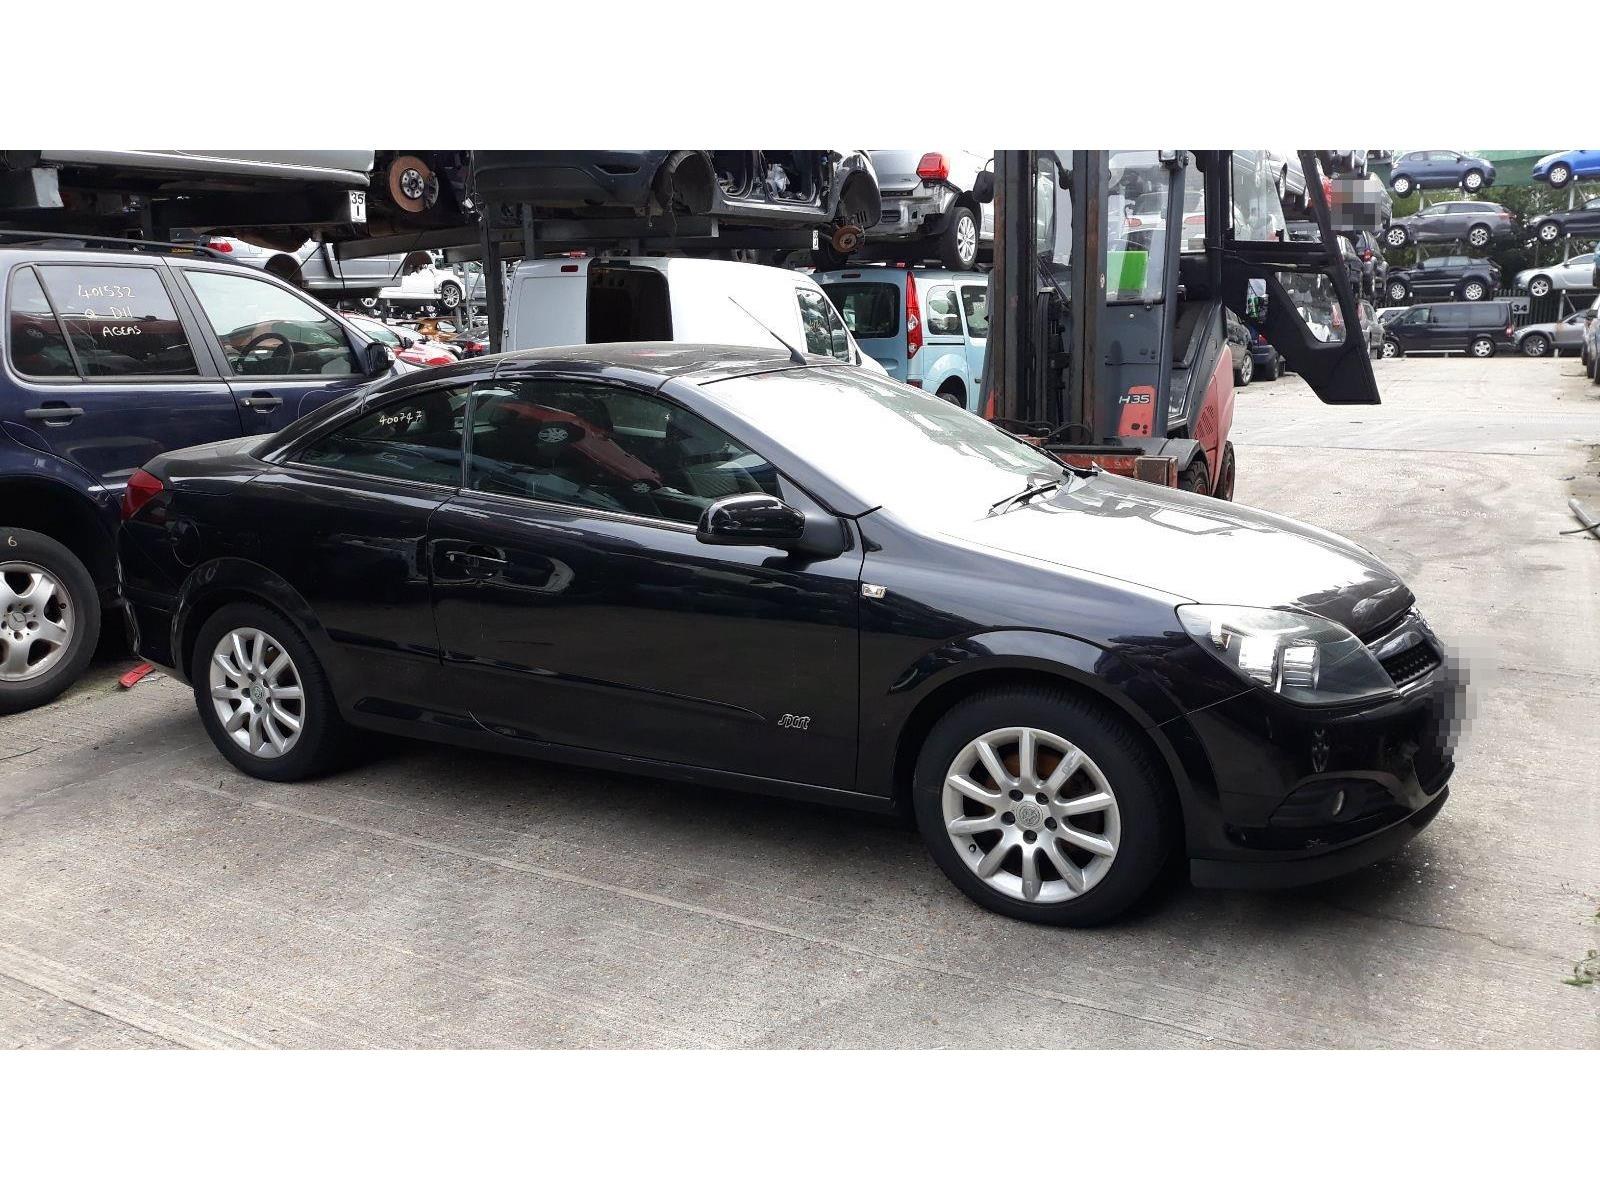 Vauxhall Astra 2005 To 2011 Twin Top Sport 2 Door Cabriolet / scrap /  salvage car for sale / auction | Silverlake Autoparts